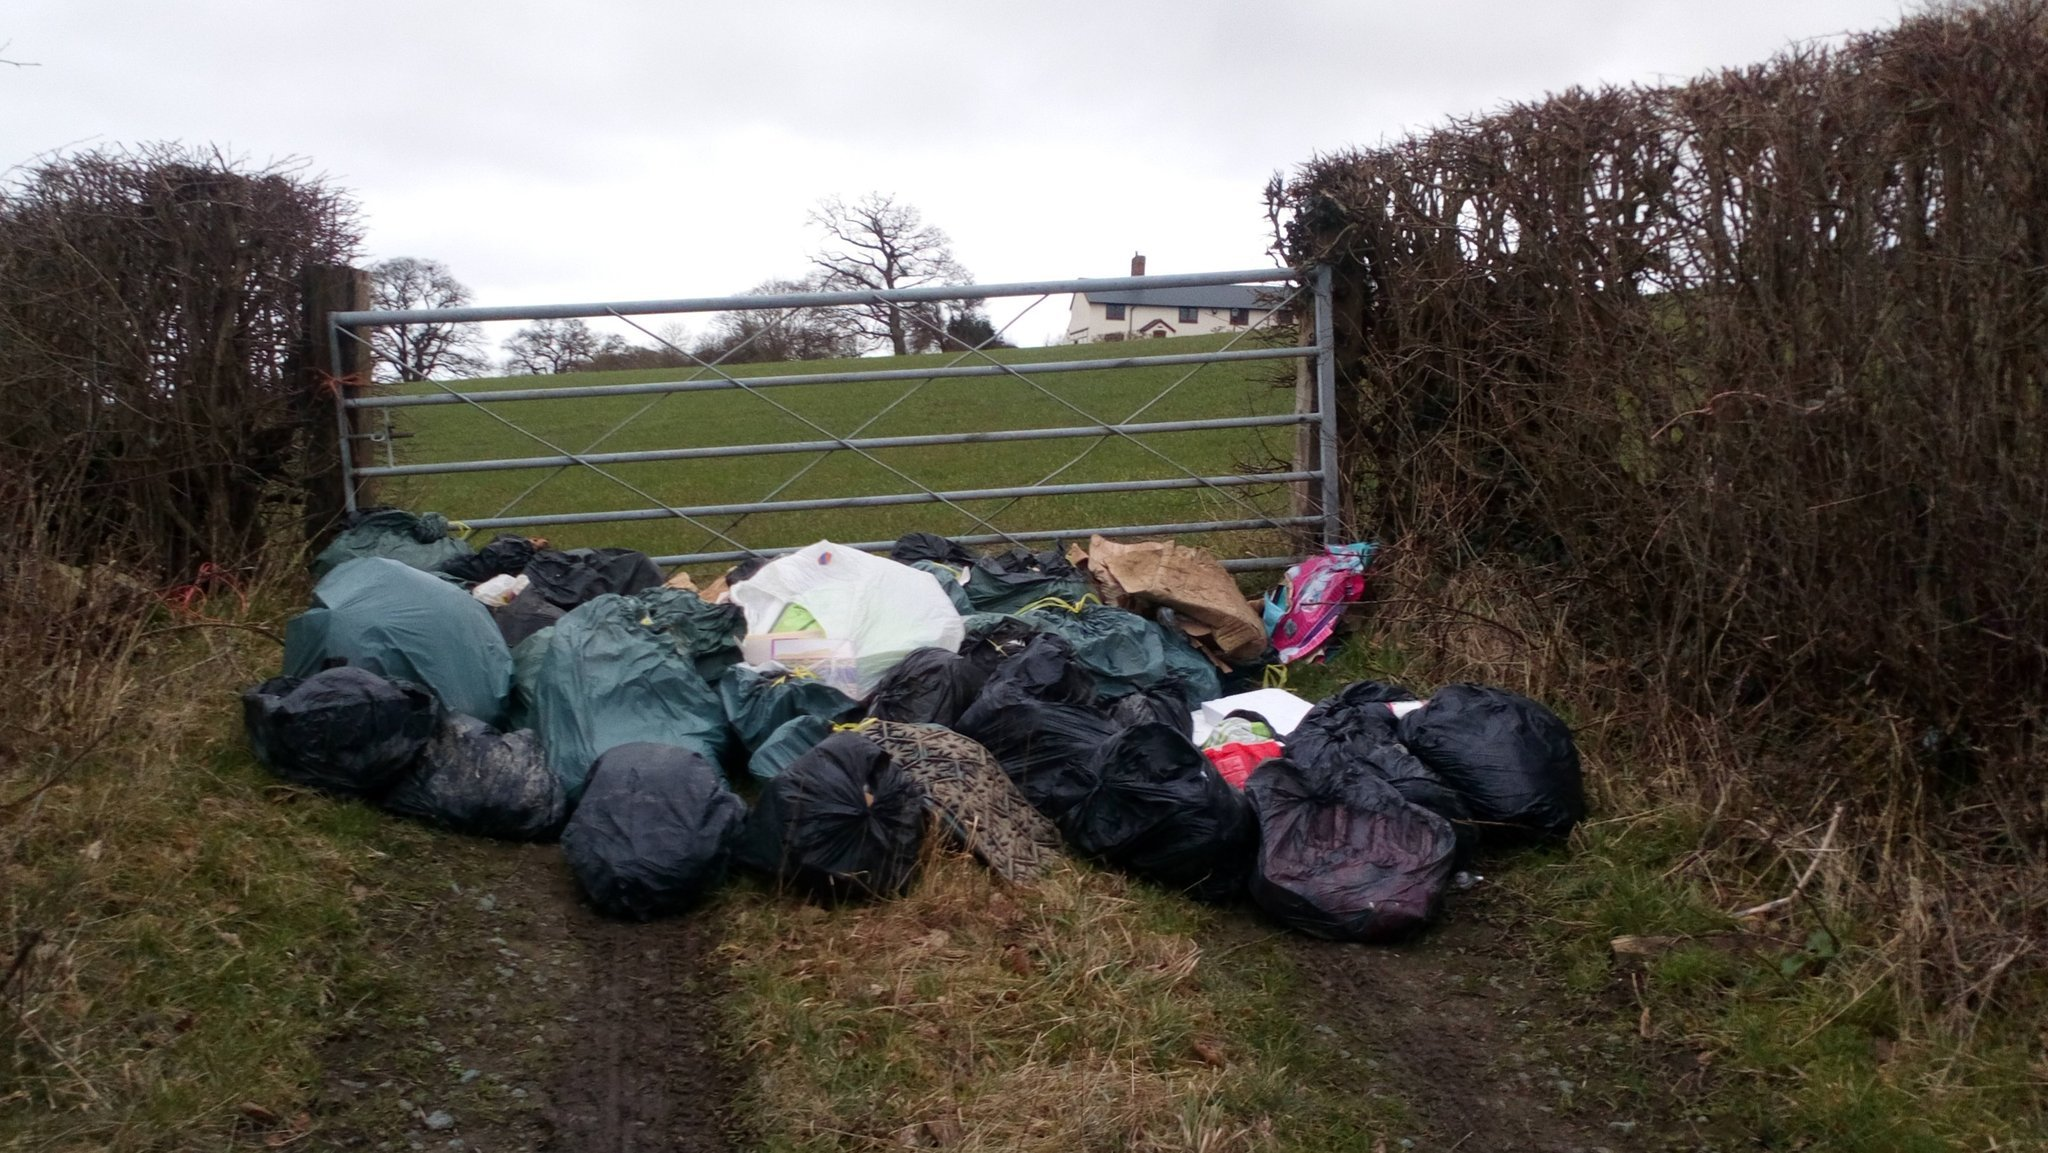 The rubbish which was fly tipped in Leighton, near Welshpool, on February 8